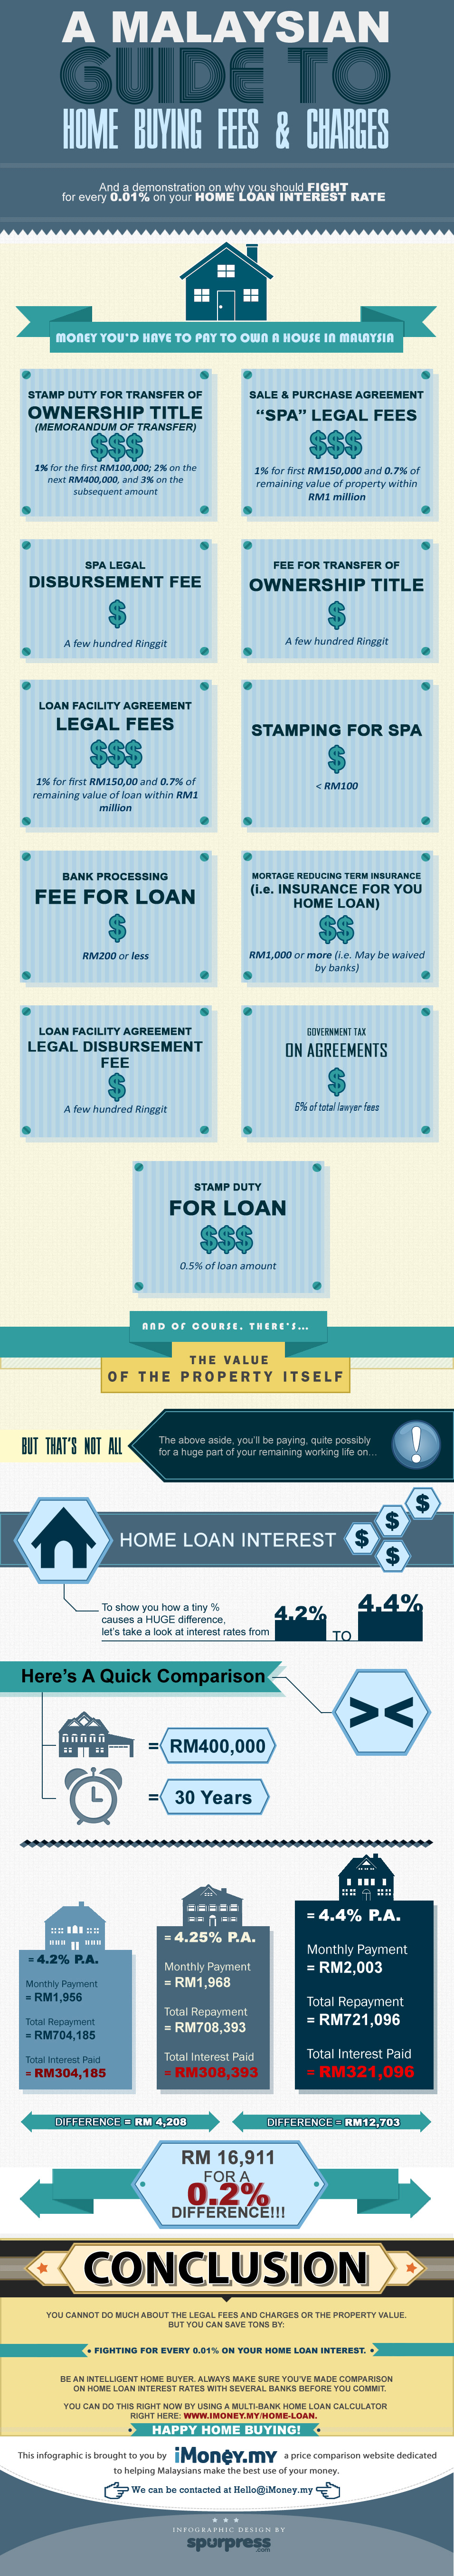 Home-Buying-Infographic-Revision-3-Eng-Highres